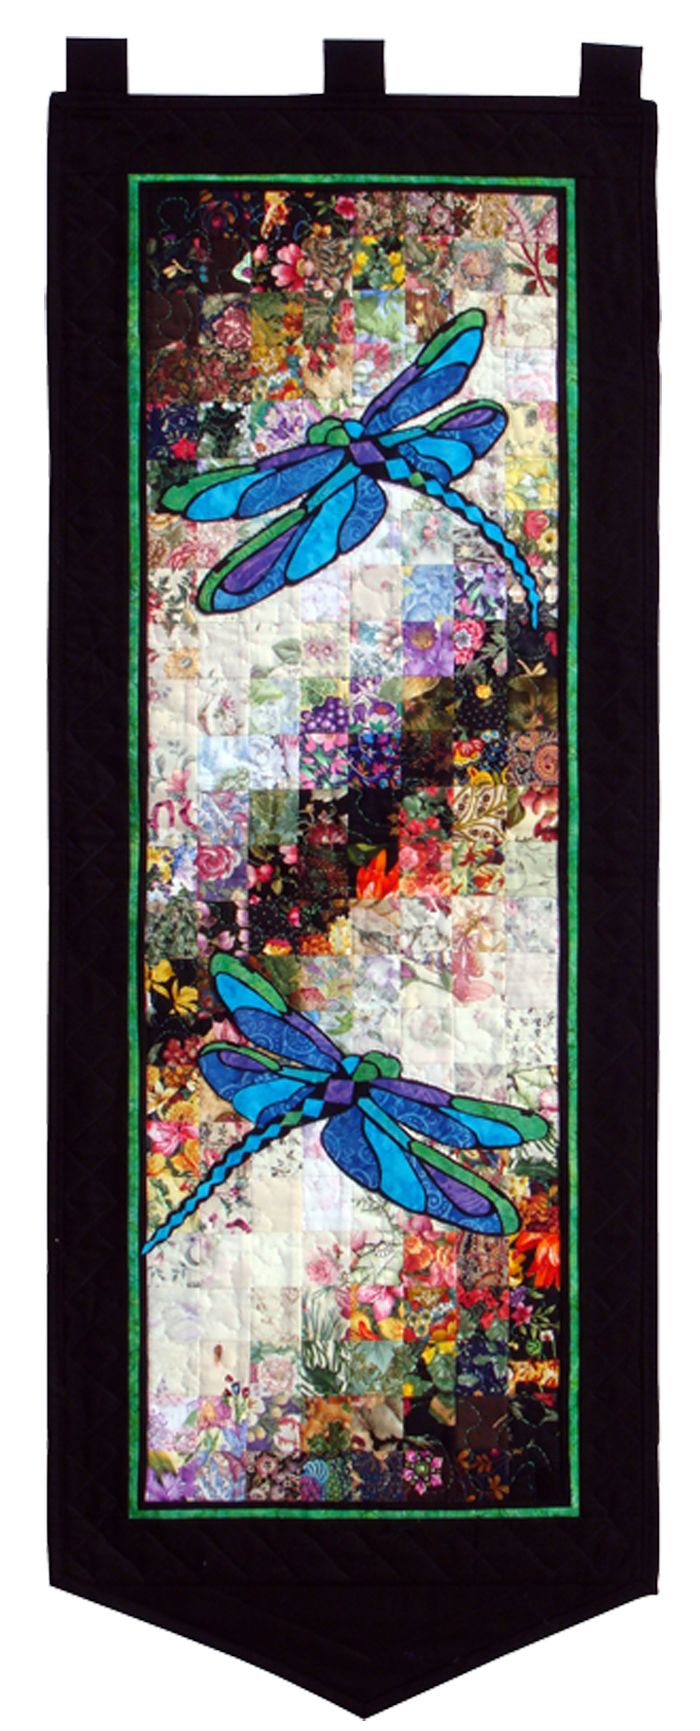 Easy & fun kit for Spring or Summer. Stained Glass Dragonflies Quilt Kit WHIM-211 by Whims Watercolor Quilt Kits - Susan Stutzman. Check out our seasonal patterns. https://www.pinterest.com/quiltwomancom/seasonal-patterns/ Subscribe to our mailing list for updates on new patterns and sales! https://visitor.constantcontact.com/manage/optin?v=001nInsvTYVCuDEFMt6NnF5AZm5OdNtzij2ua4k-qgFIzX6B22GyGeBWSrTG2Of_W0RDlB-QaVpNqTrhbz9y39jbLrD2dlEPkoHf_P3E6E5nBNVQNAEUs-xVA%3D%3D